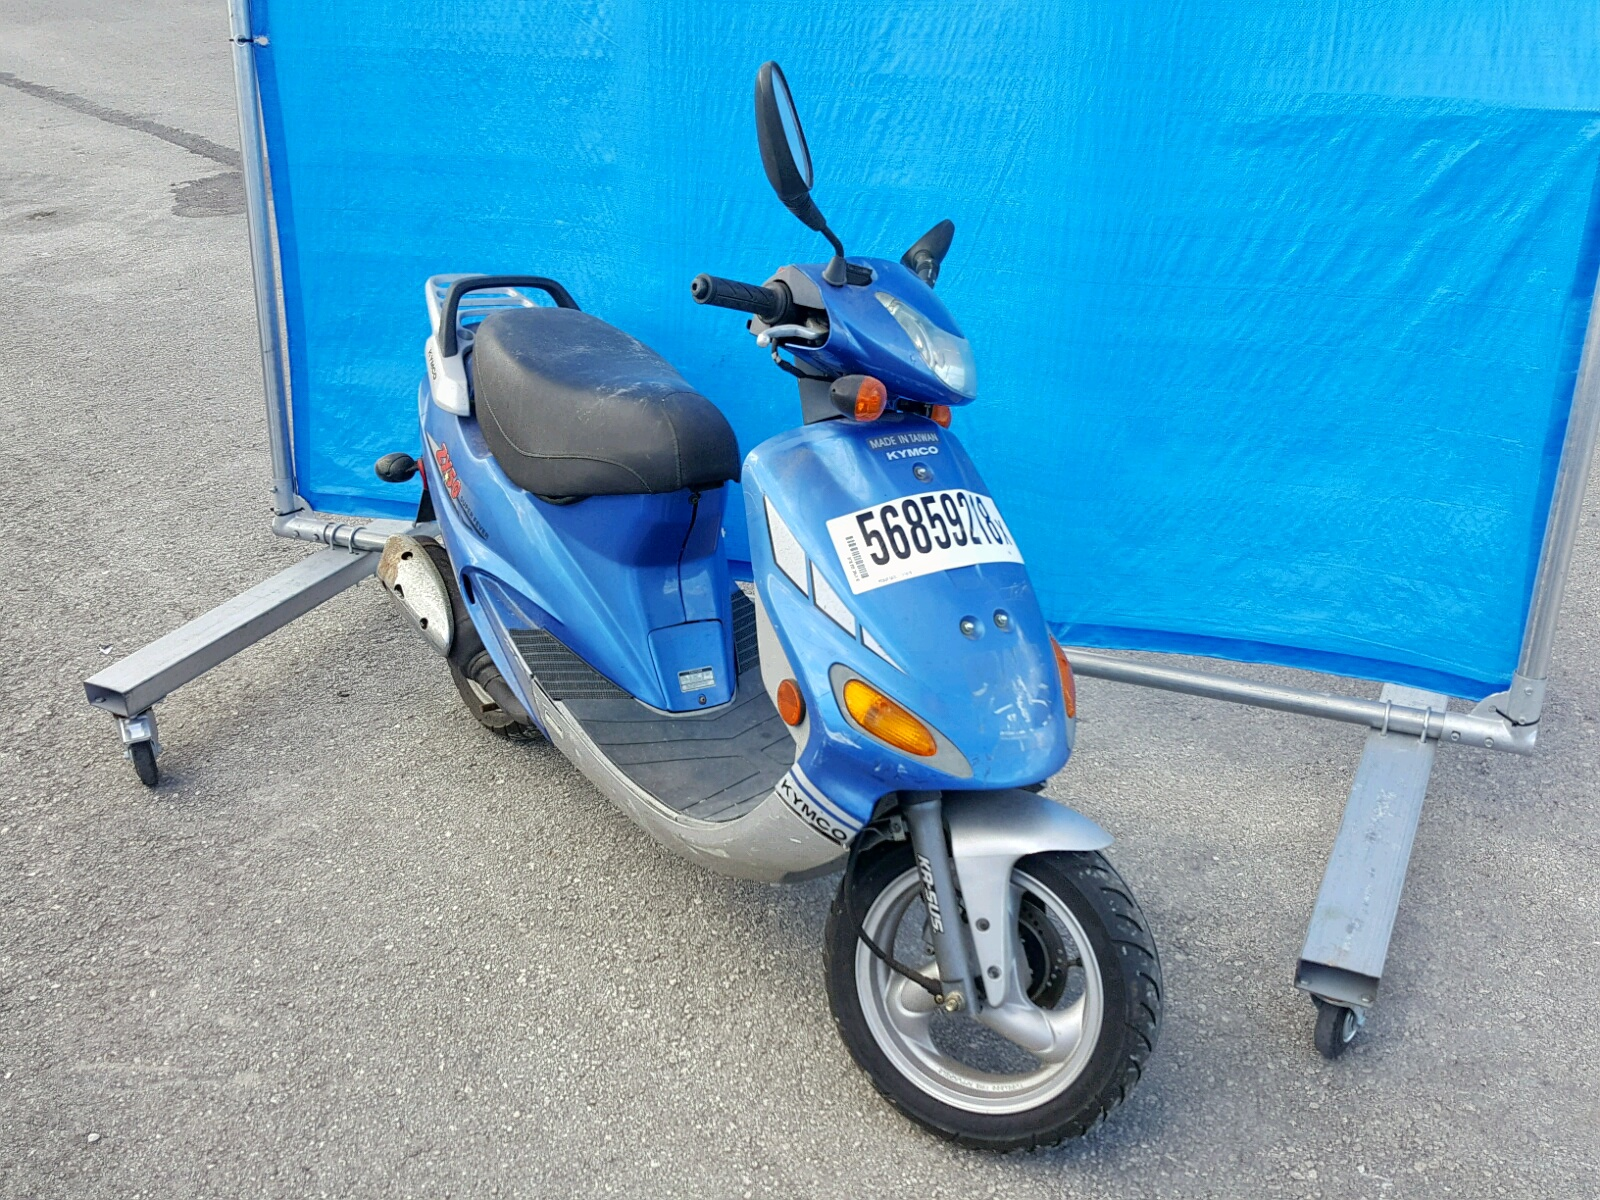 Salvage 2005 Kymco Usa Inc ZX50 for sale